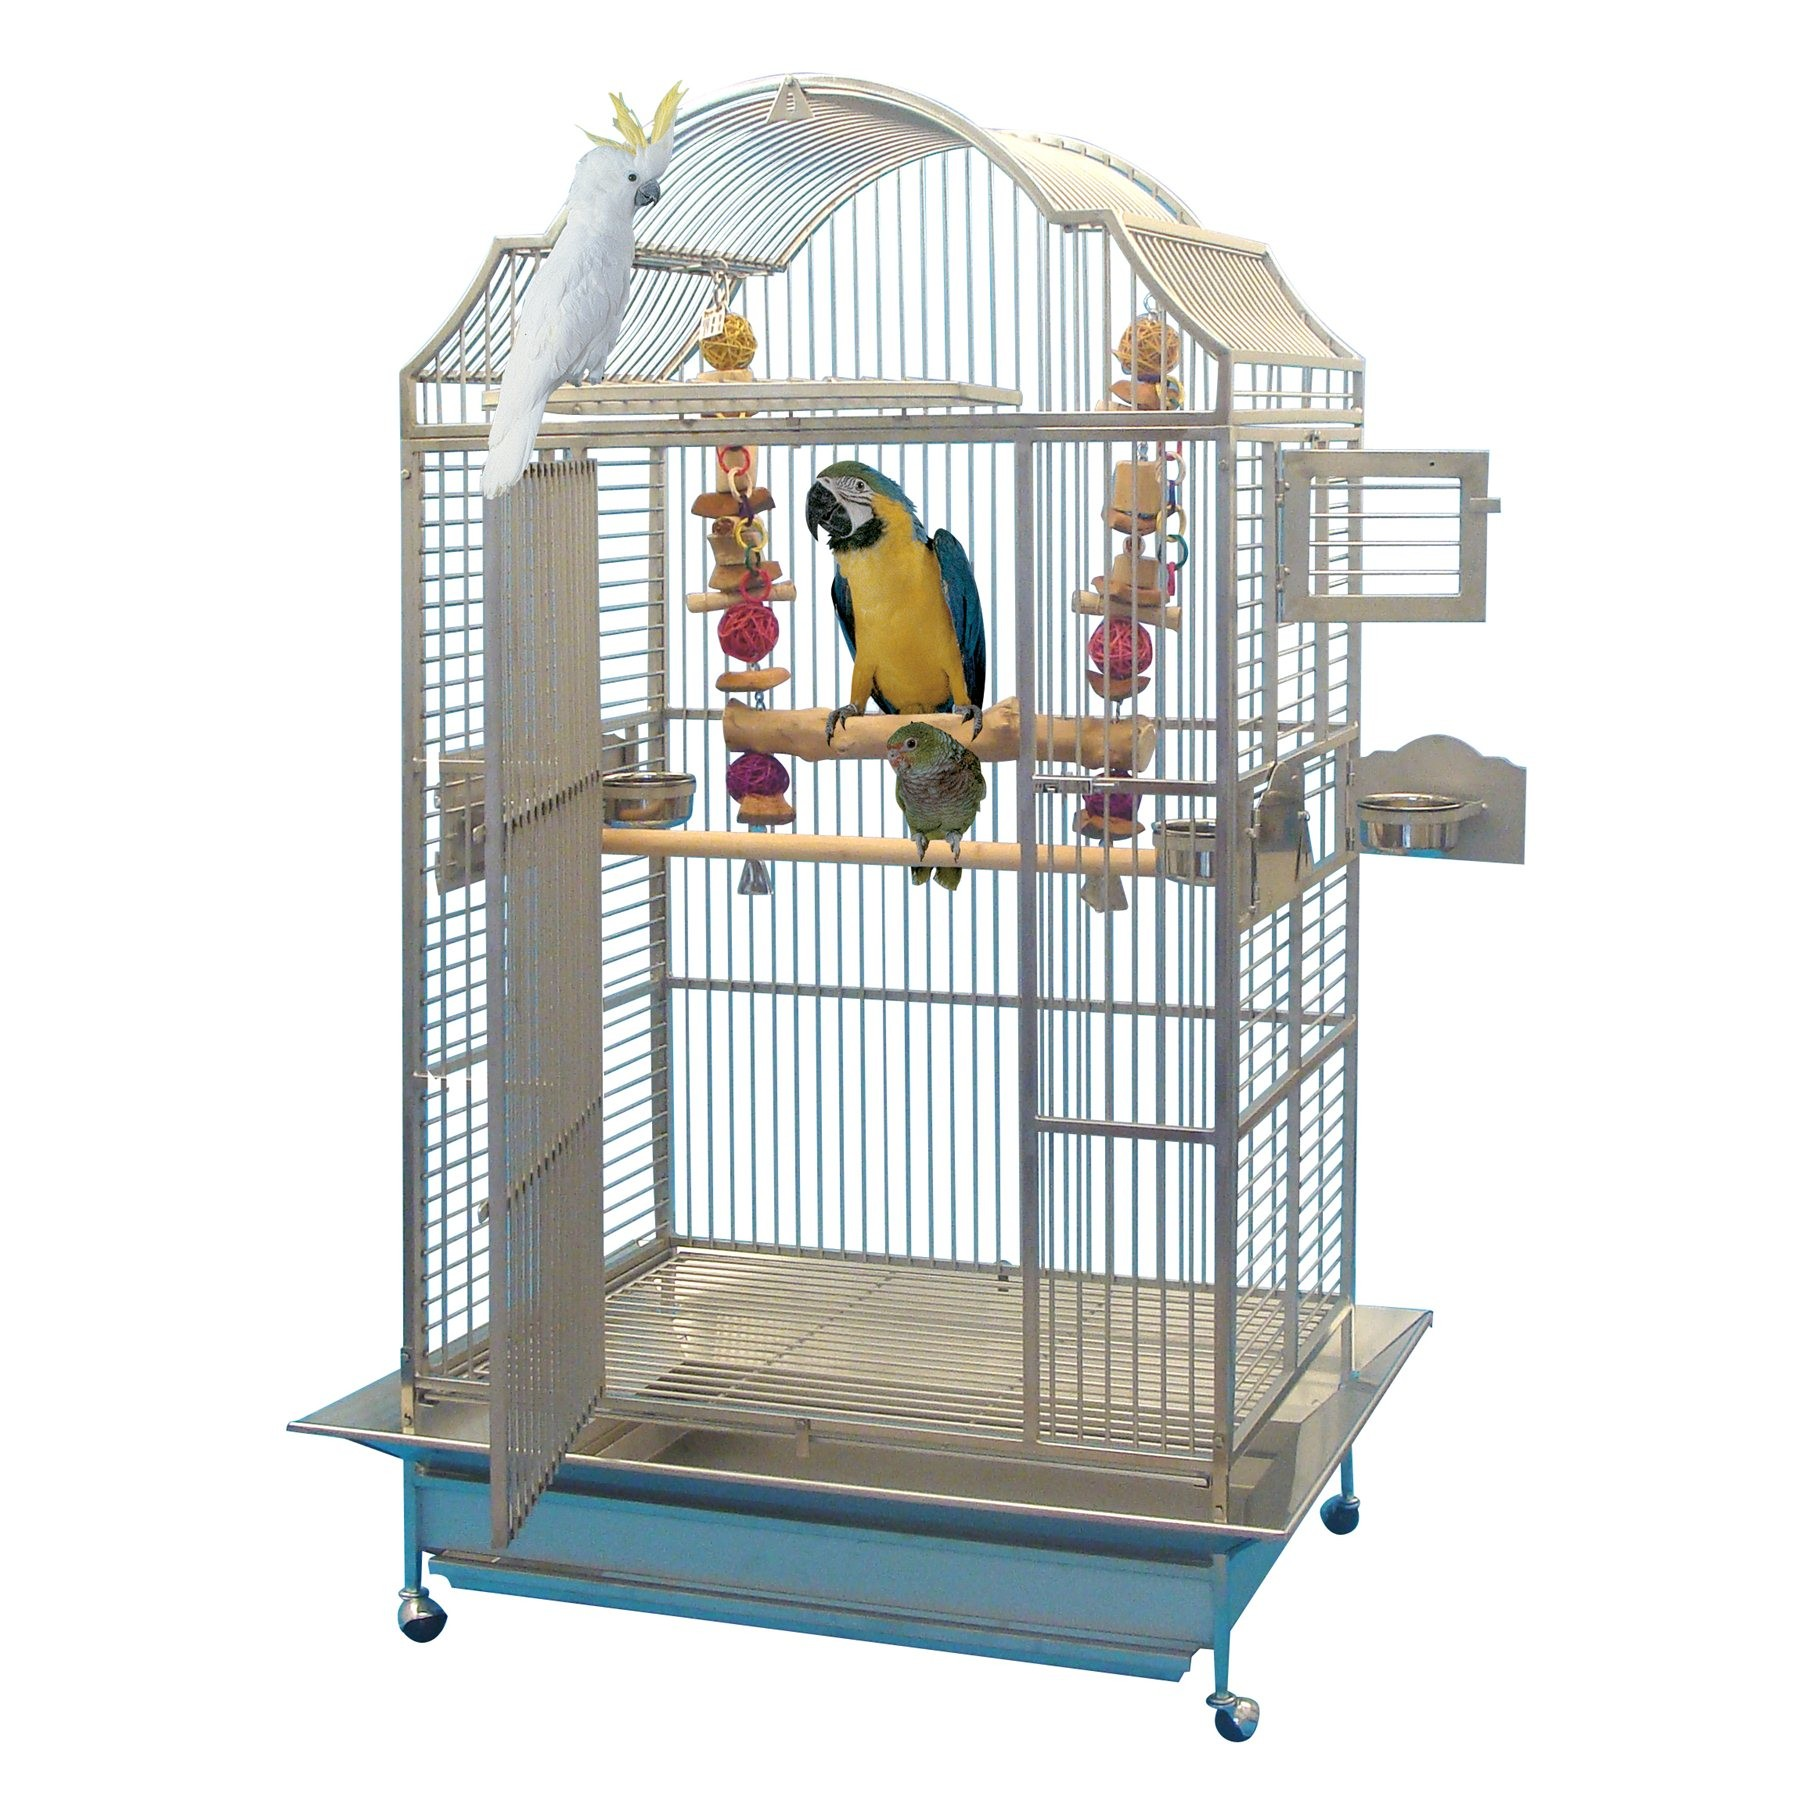 cage inox perroquet king 39 s cages mod le 306 inox 1 700. Black Bedroom Furniture Sets. Home Design Ideas